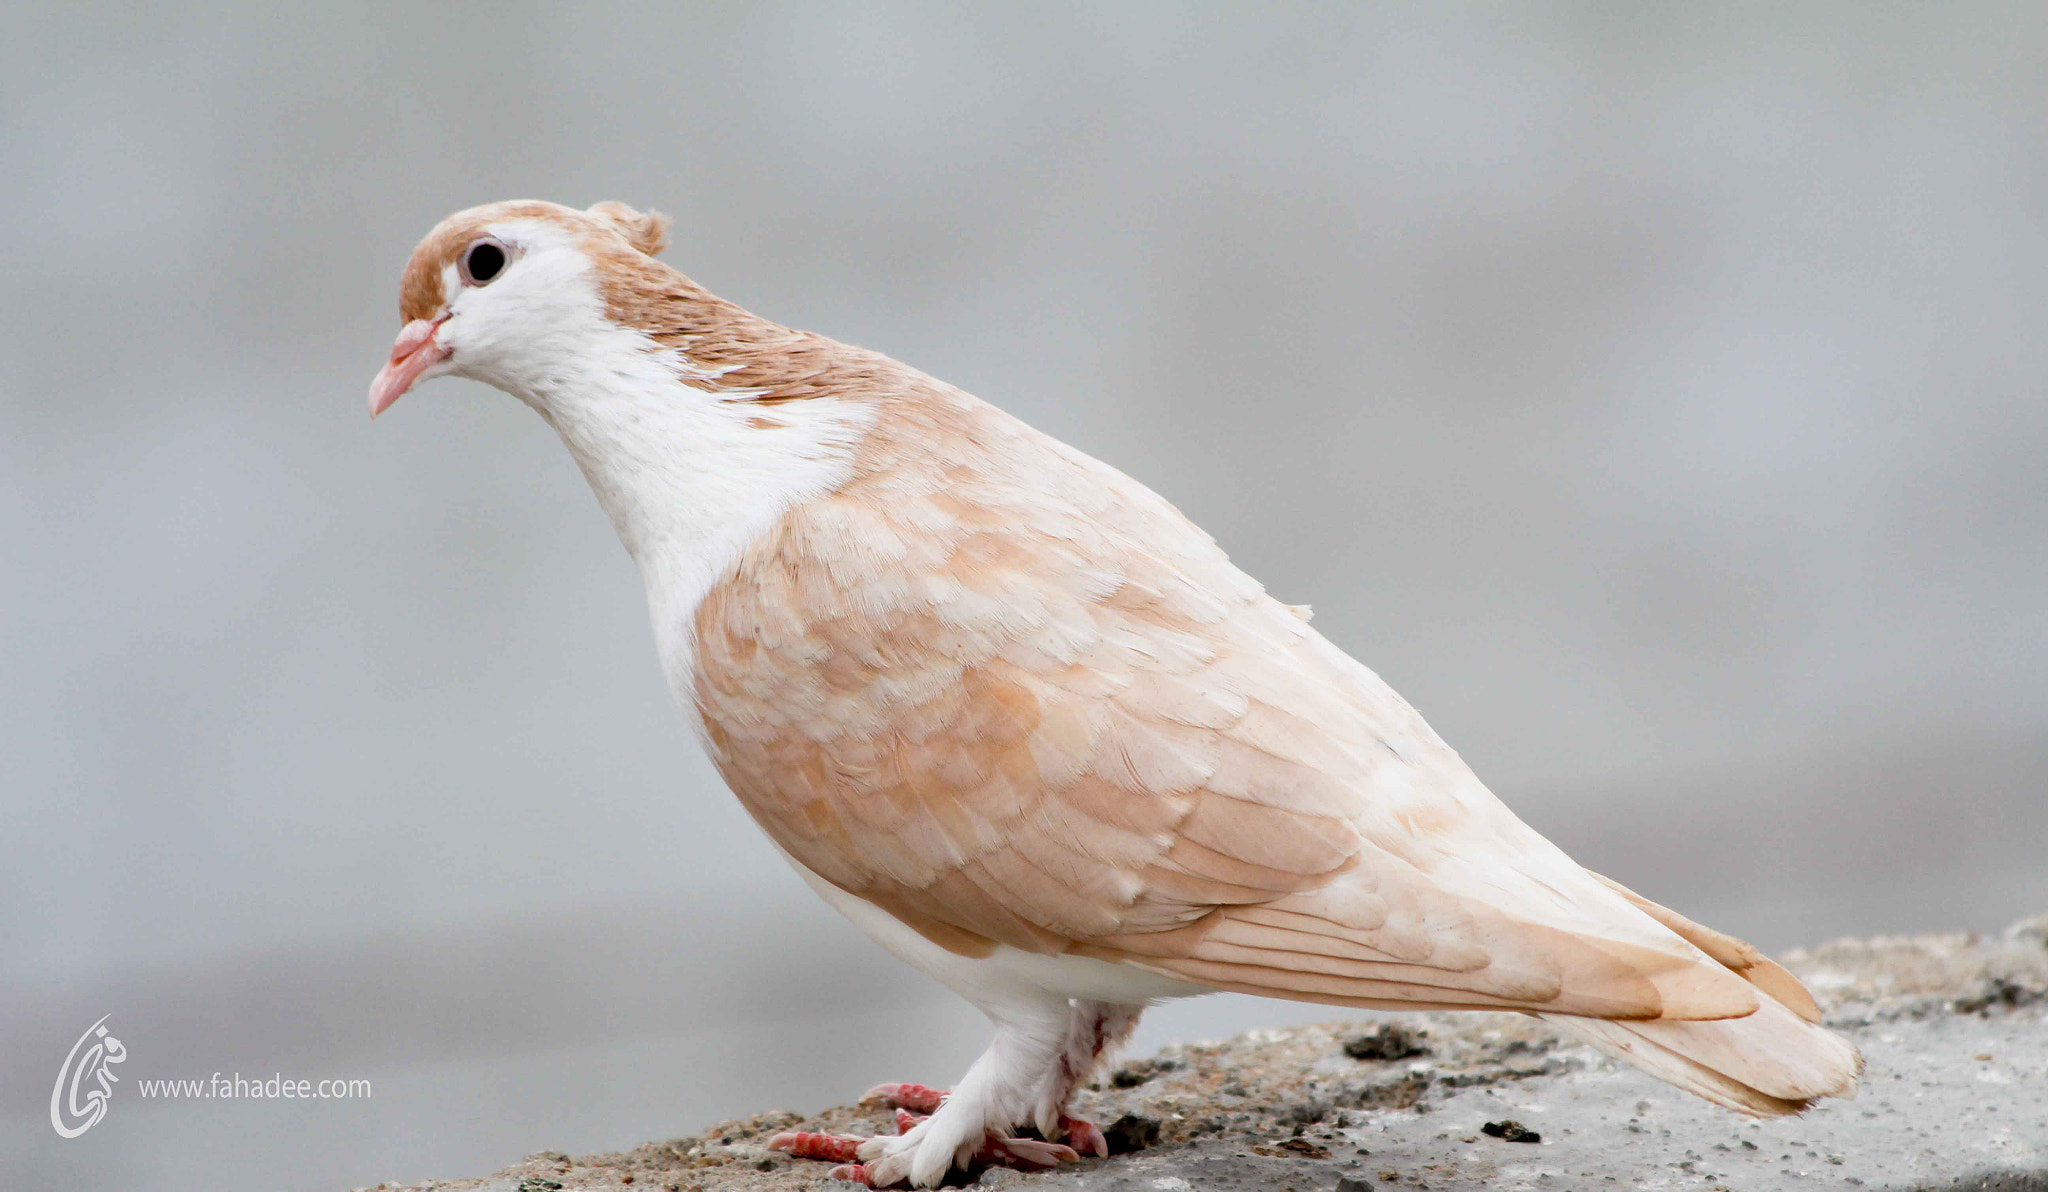 Photograph Pigeon by Fahad Siddiqui on 500px